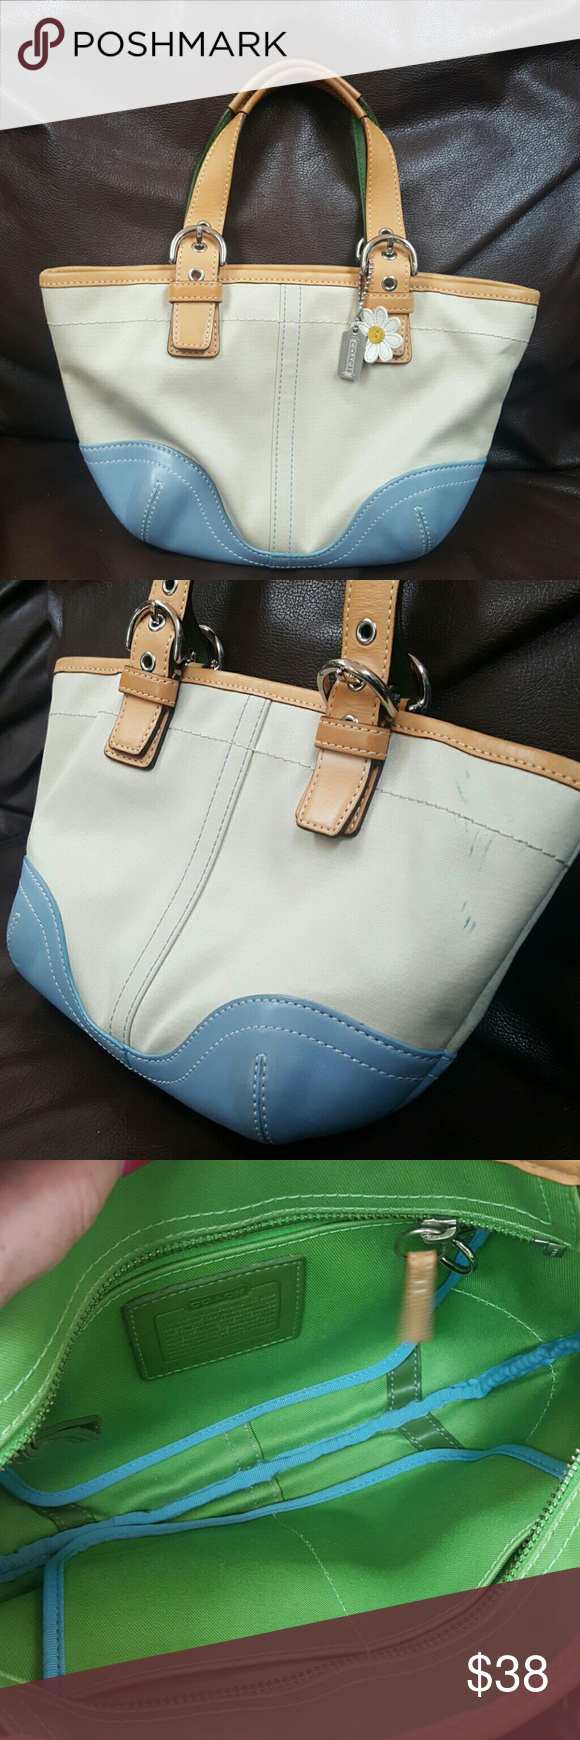 """Authentic Coach Daisy Handbag *Adorable* Excellent used condition authentic Coach bag! Minor marks shown in second photo, overall condition is fantastic! Handbag, cannot go over the shoulder.   Measurements: Length - 10"""" Height - 6.5"""" Depth - 1.5"""" Strap Drop - 5"""" Bags Totes"""